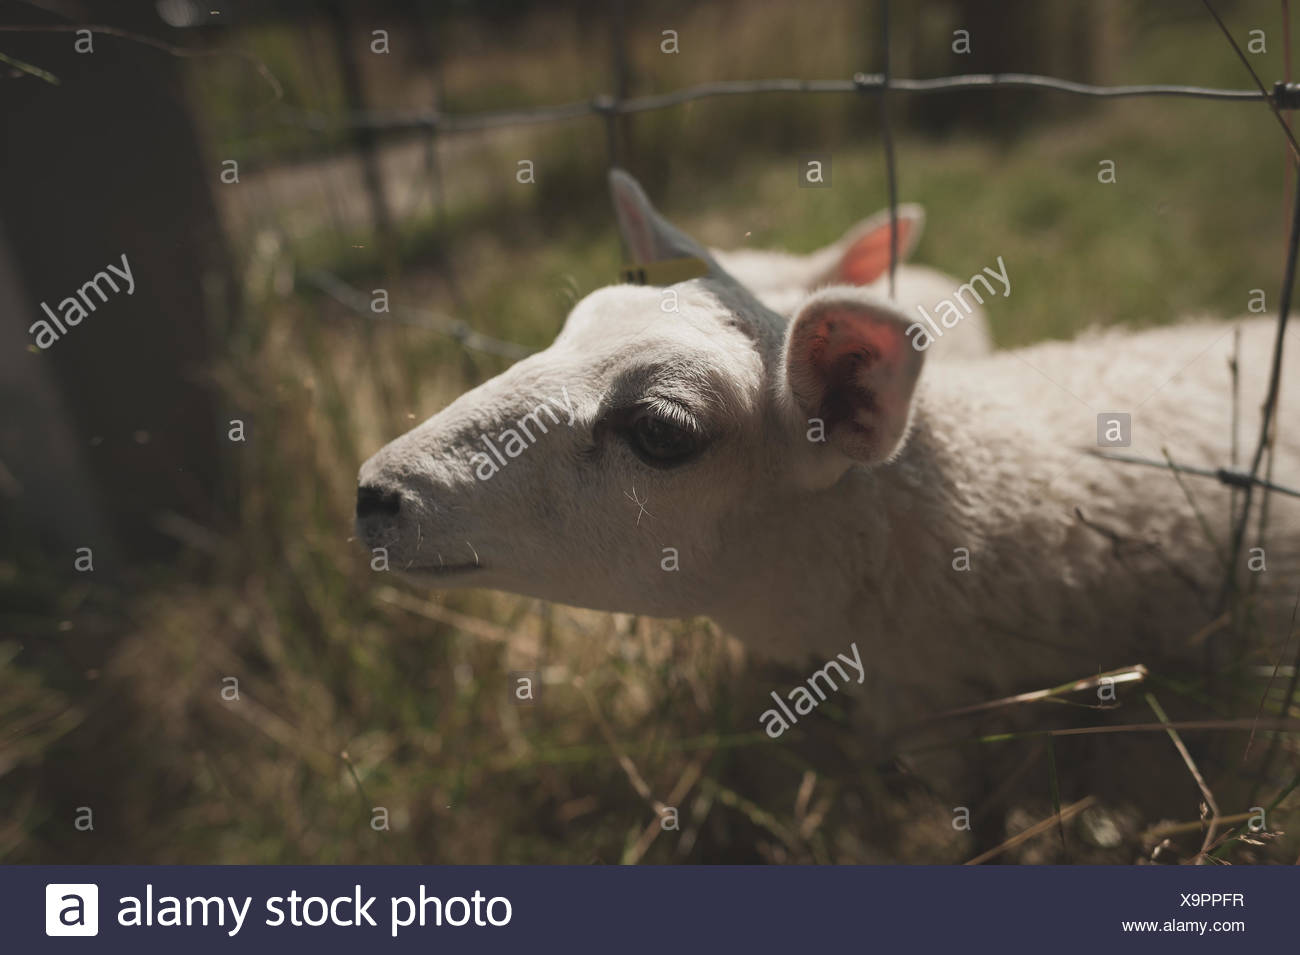 Close-Up Of Sheep At Fence On Field - Stock Image